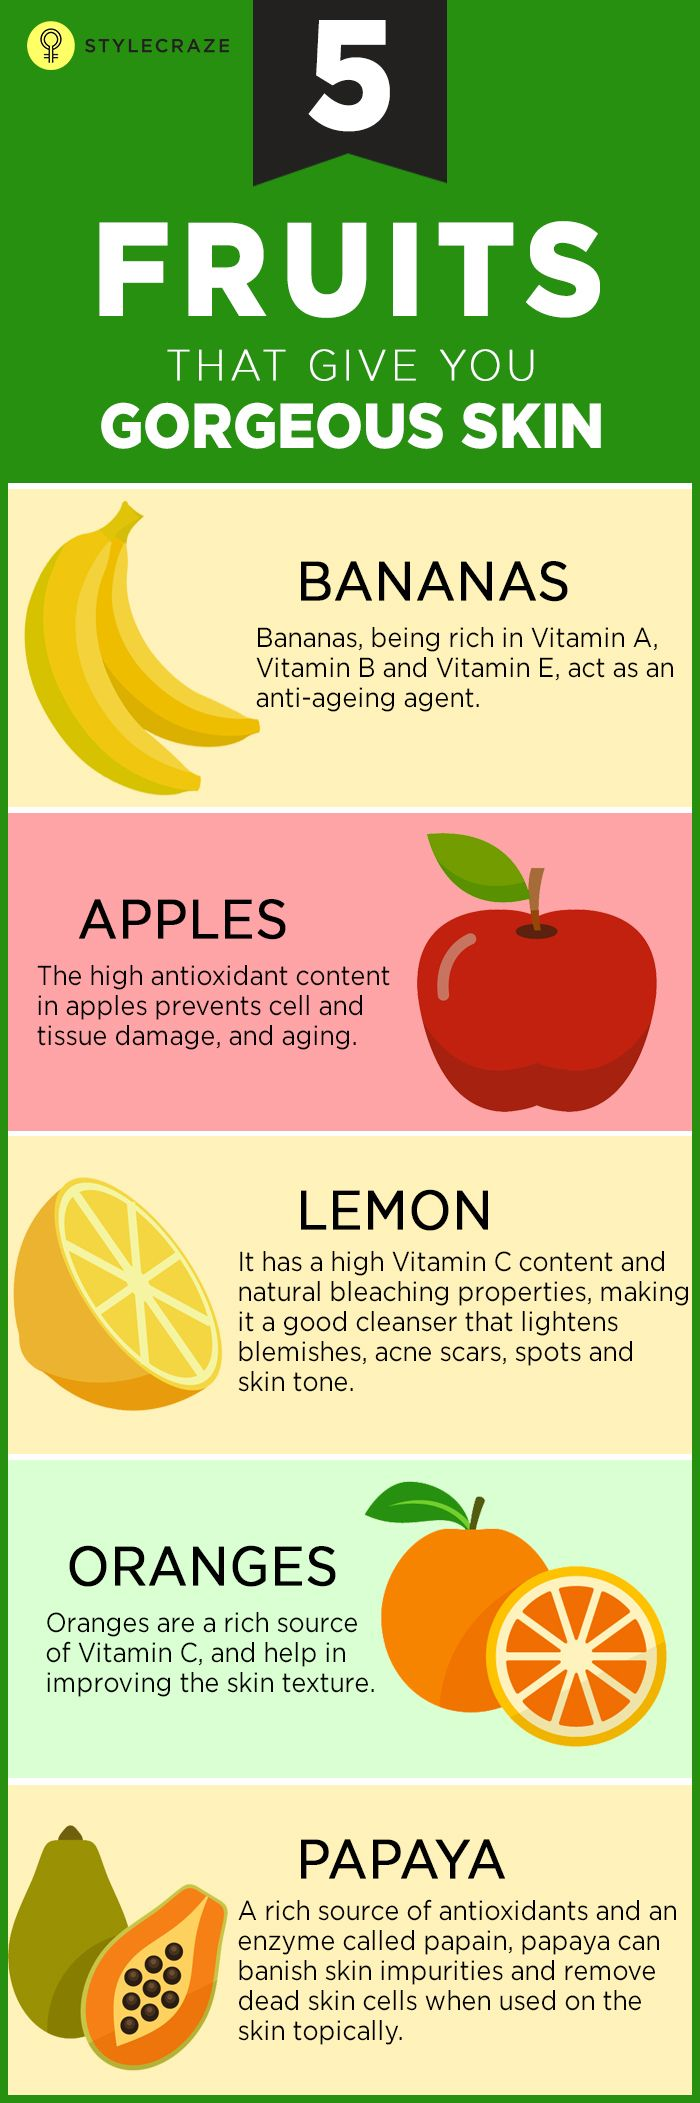 Simple lifestyle changes like incorporating fruits in your daily diet can give you glowing skin. Fruits help with Clear complexion; Skin rejuvenation,